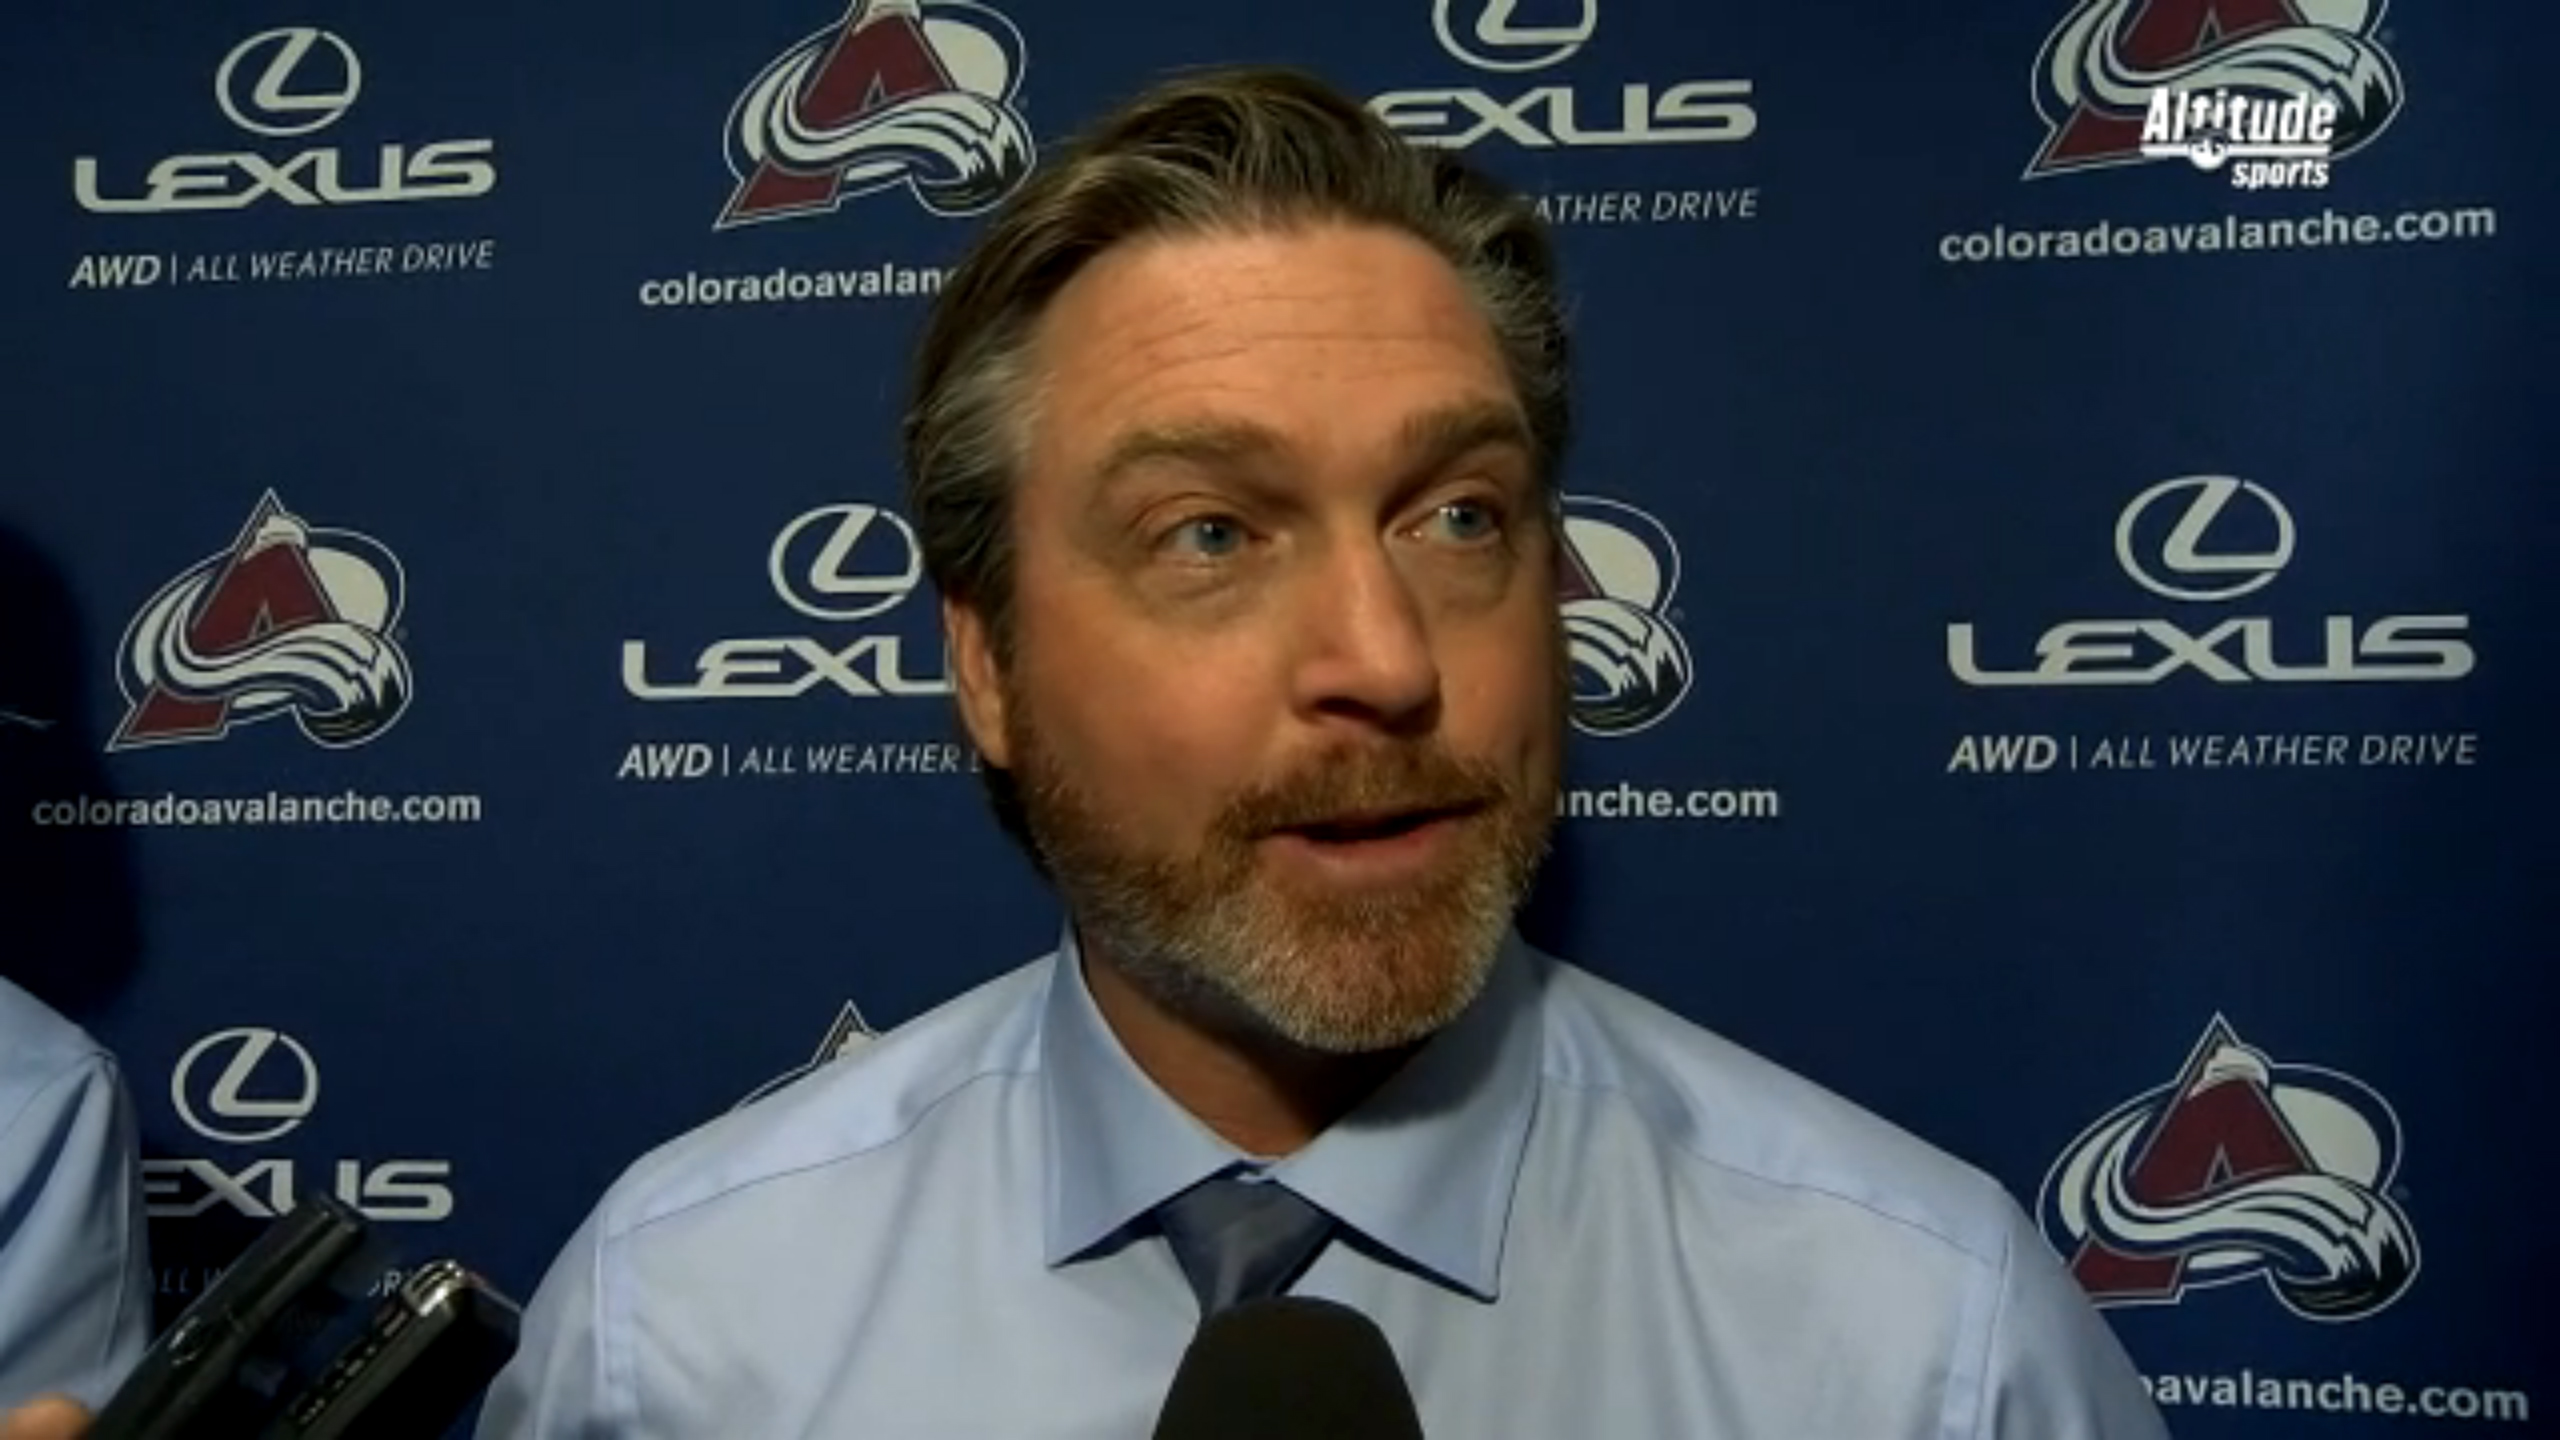 Patrick-Roy-Interview-10-27-15.jpg